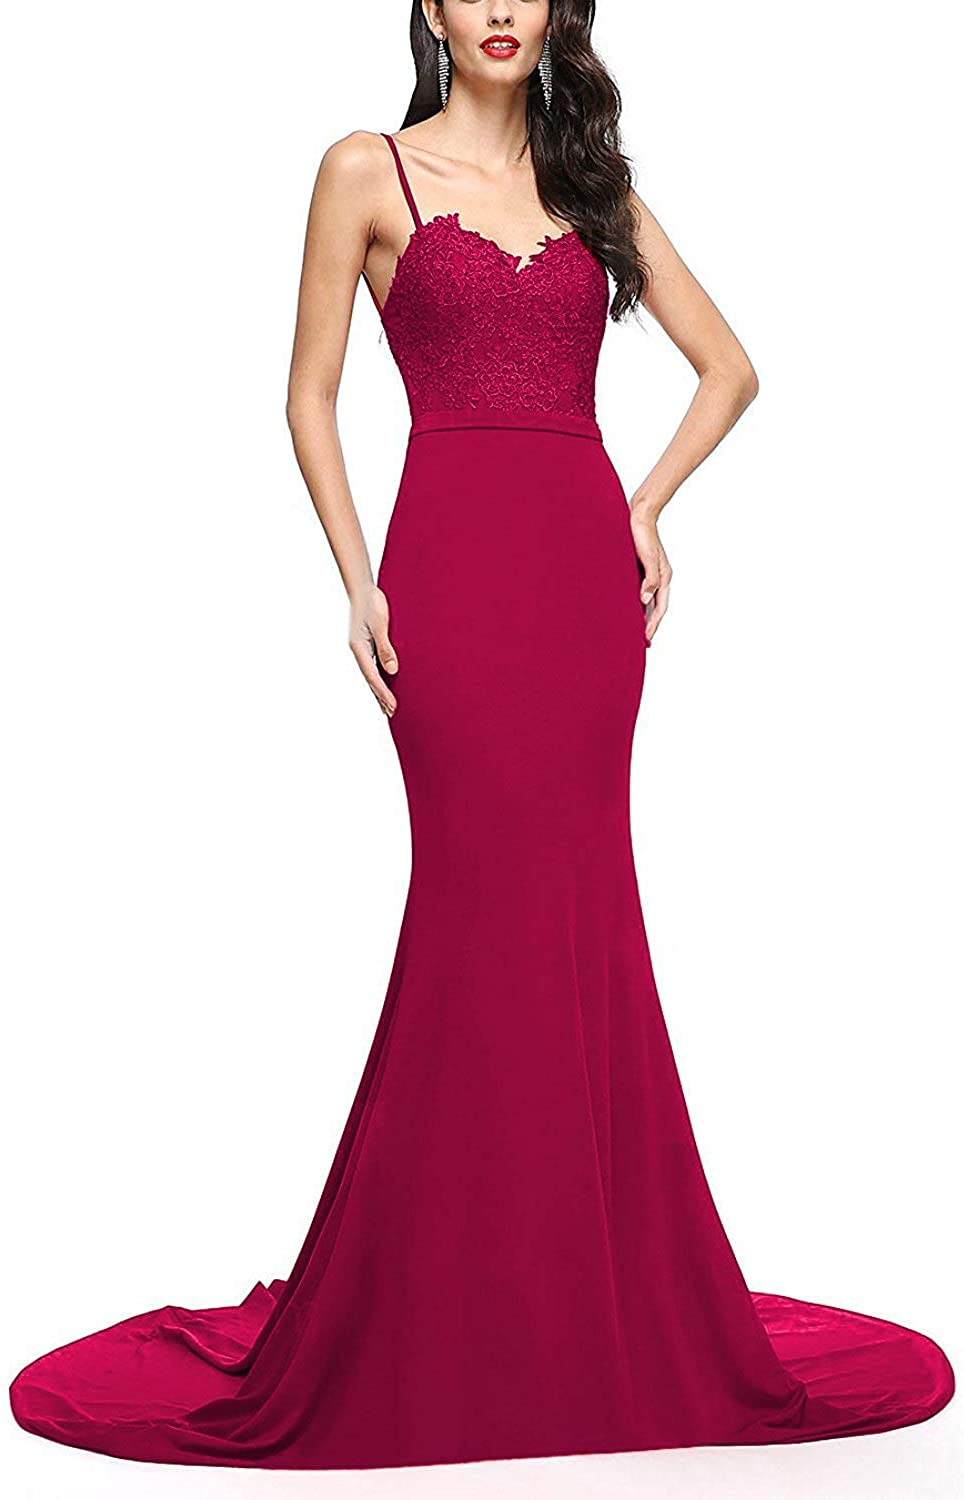 Vimans Women's 2018 Long Prom Dresses with Train Formal Evening Gown Dress5055